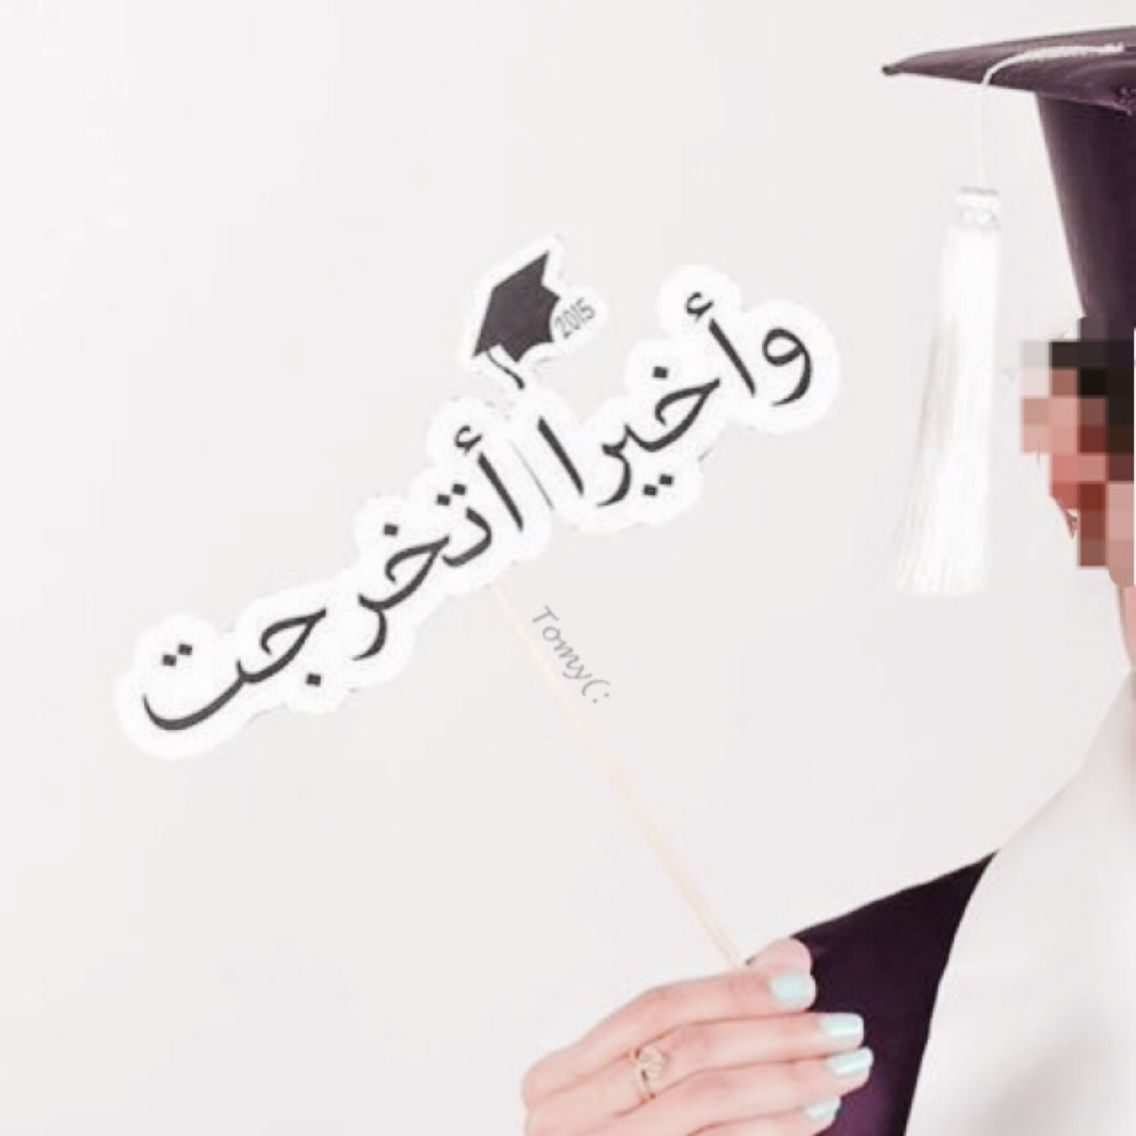 وأخيرا اتخرجت Graduation Photography Graduation Photoshoot Graduation Photos